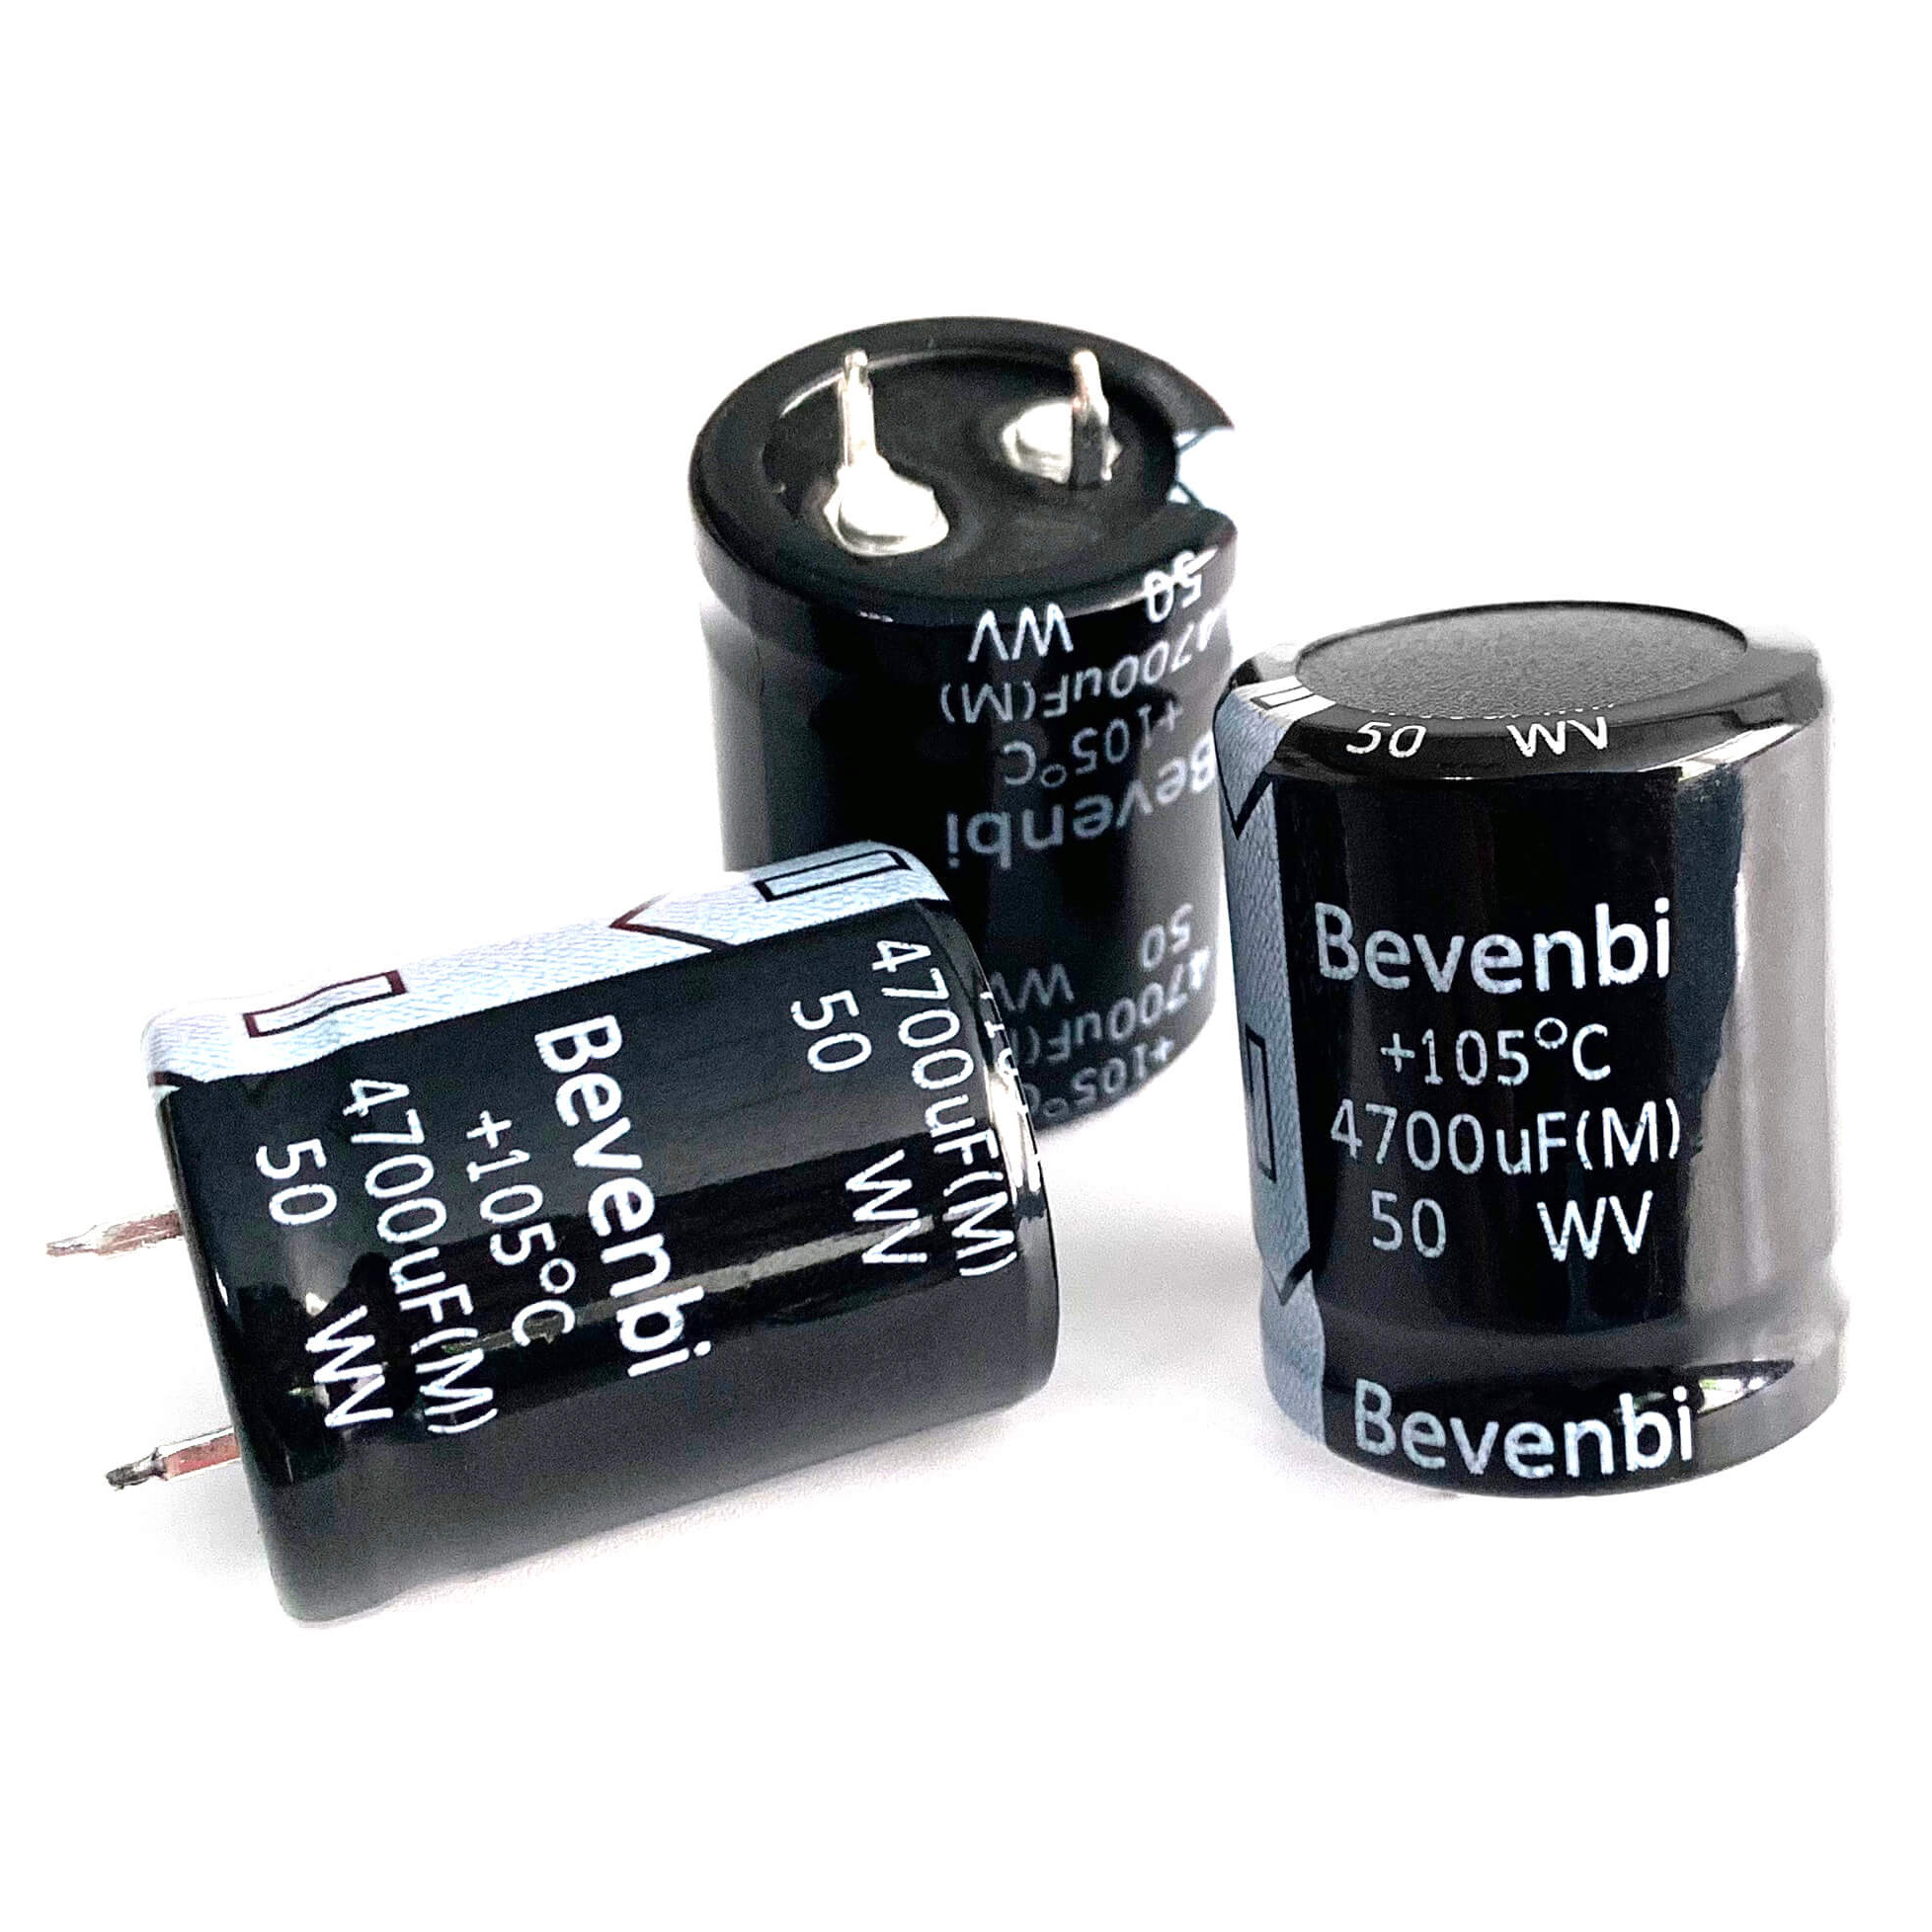 Snap In 4700uF 63 Volt Aluminum Electrolytic Capacitors 5